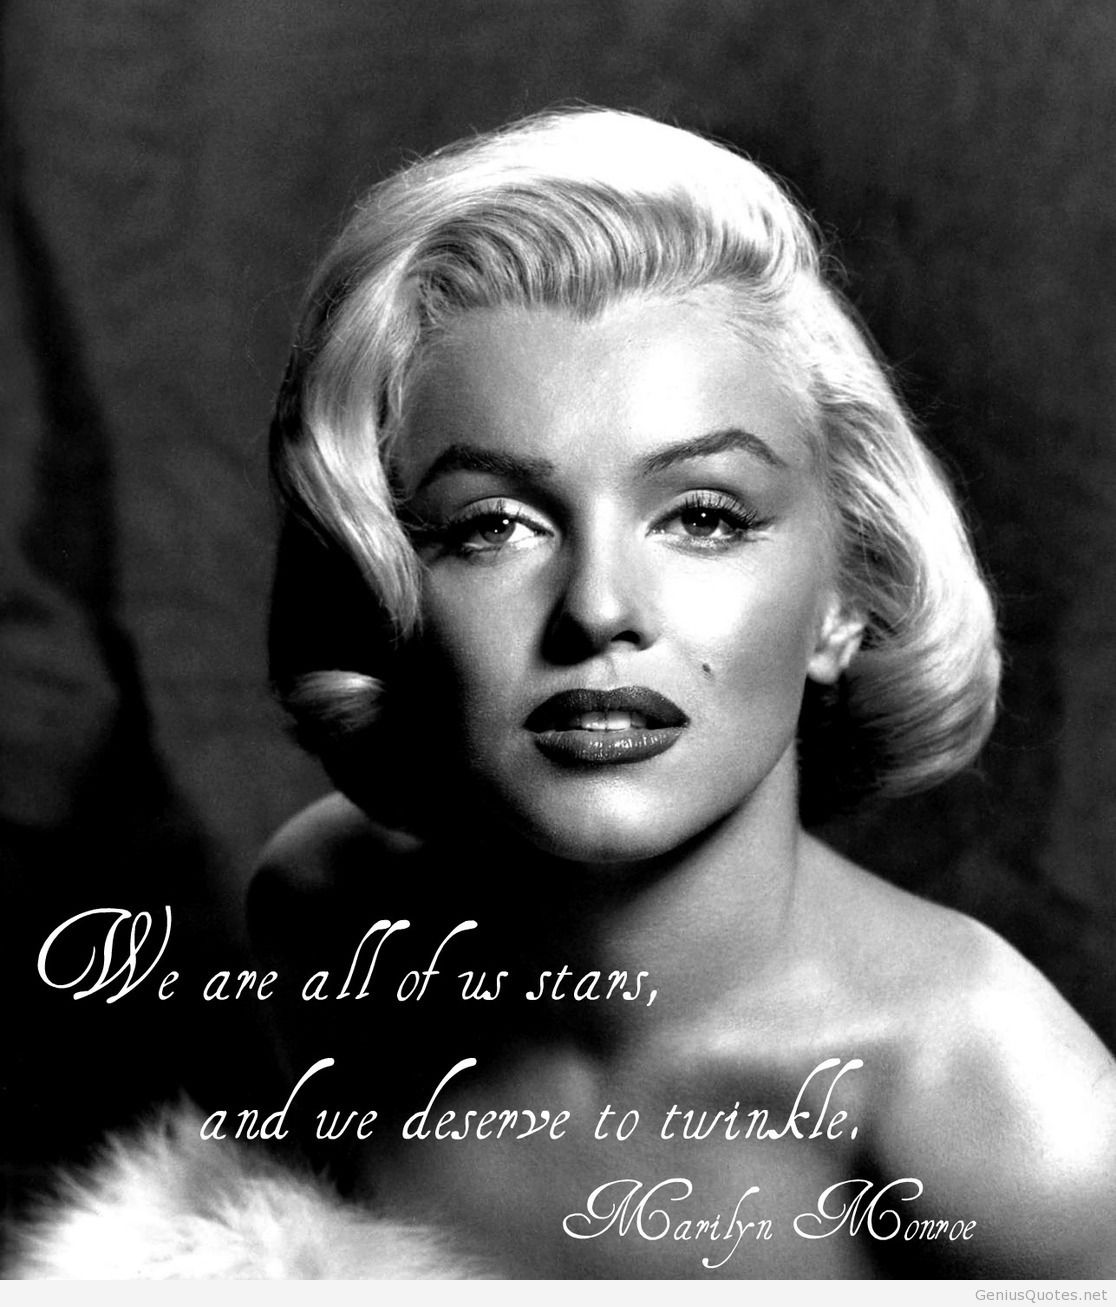 Messed Up Life Quotes: Marilyn Monroe Quotes Quotes. QuotesGram